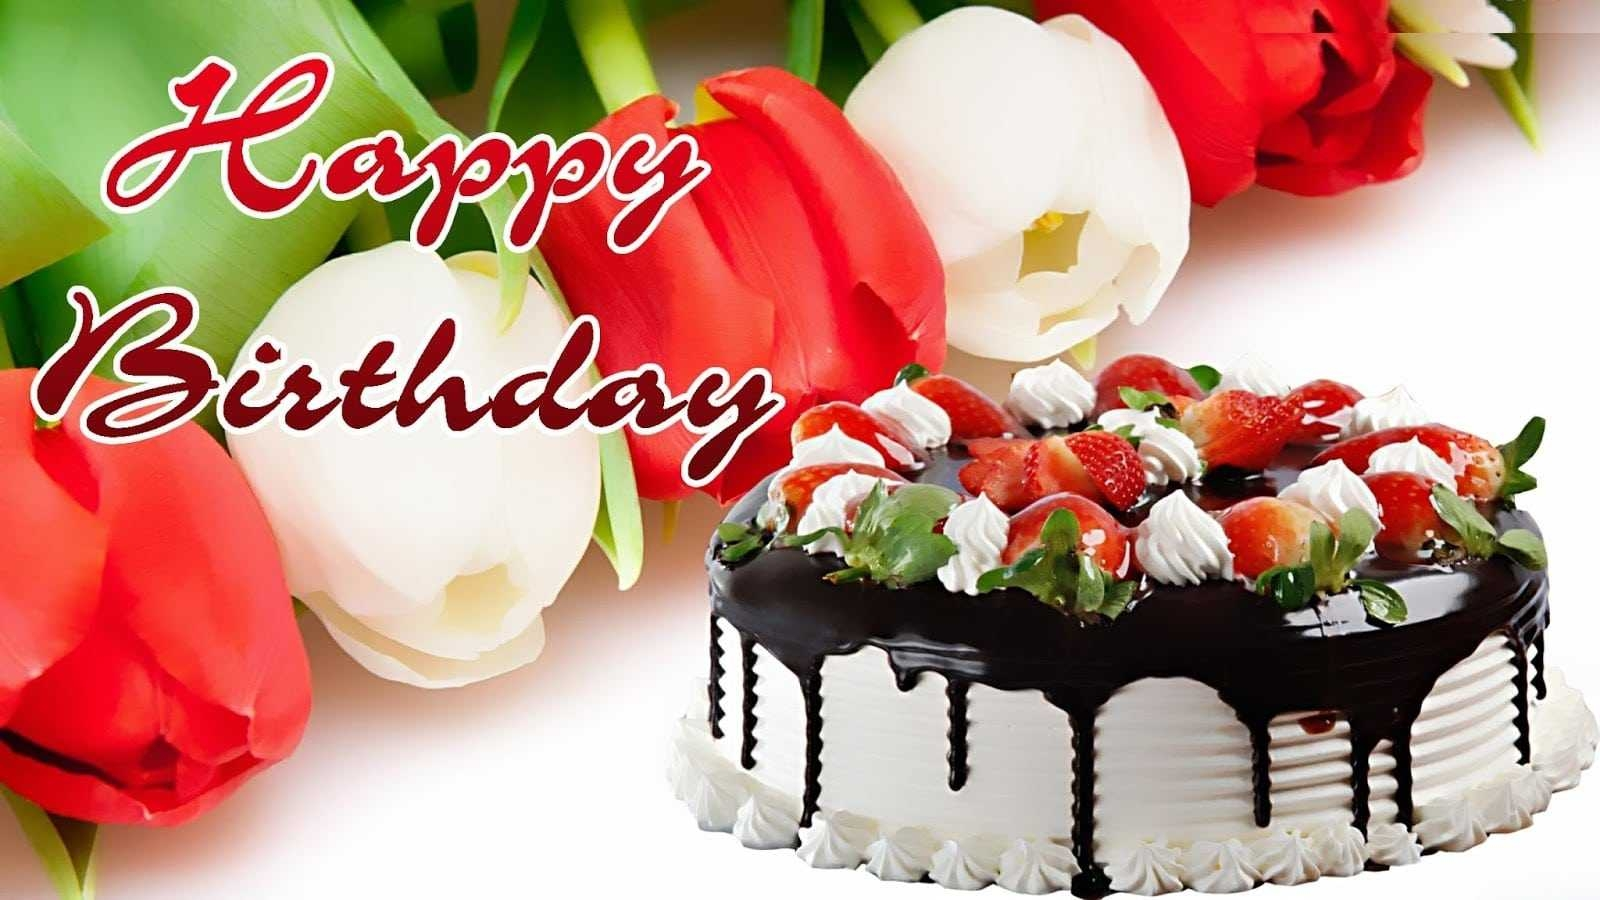 happy birthday wishes pictures free download ; happy-birthday-images-free-down-happy-birthday-images-free-down-best-of-advance-happy-birthday-wishes-hd-free-download-happy